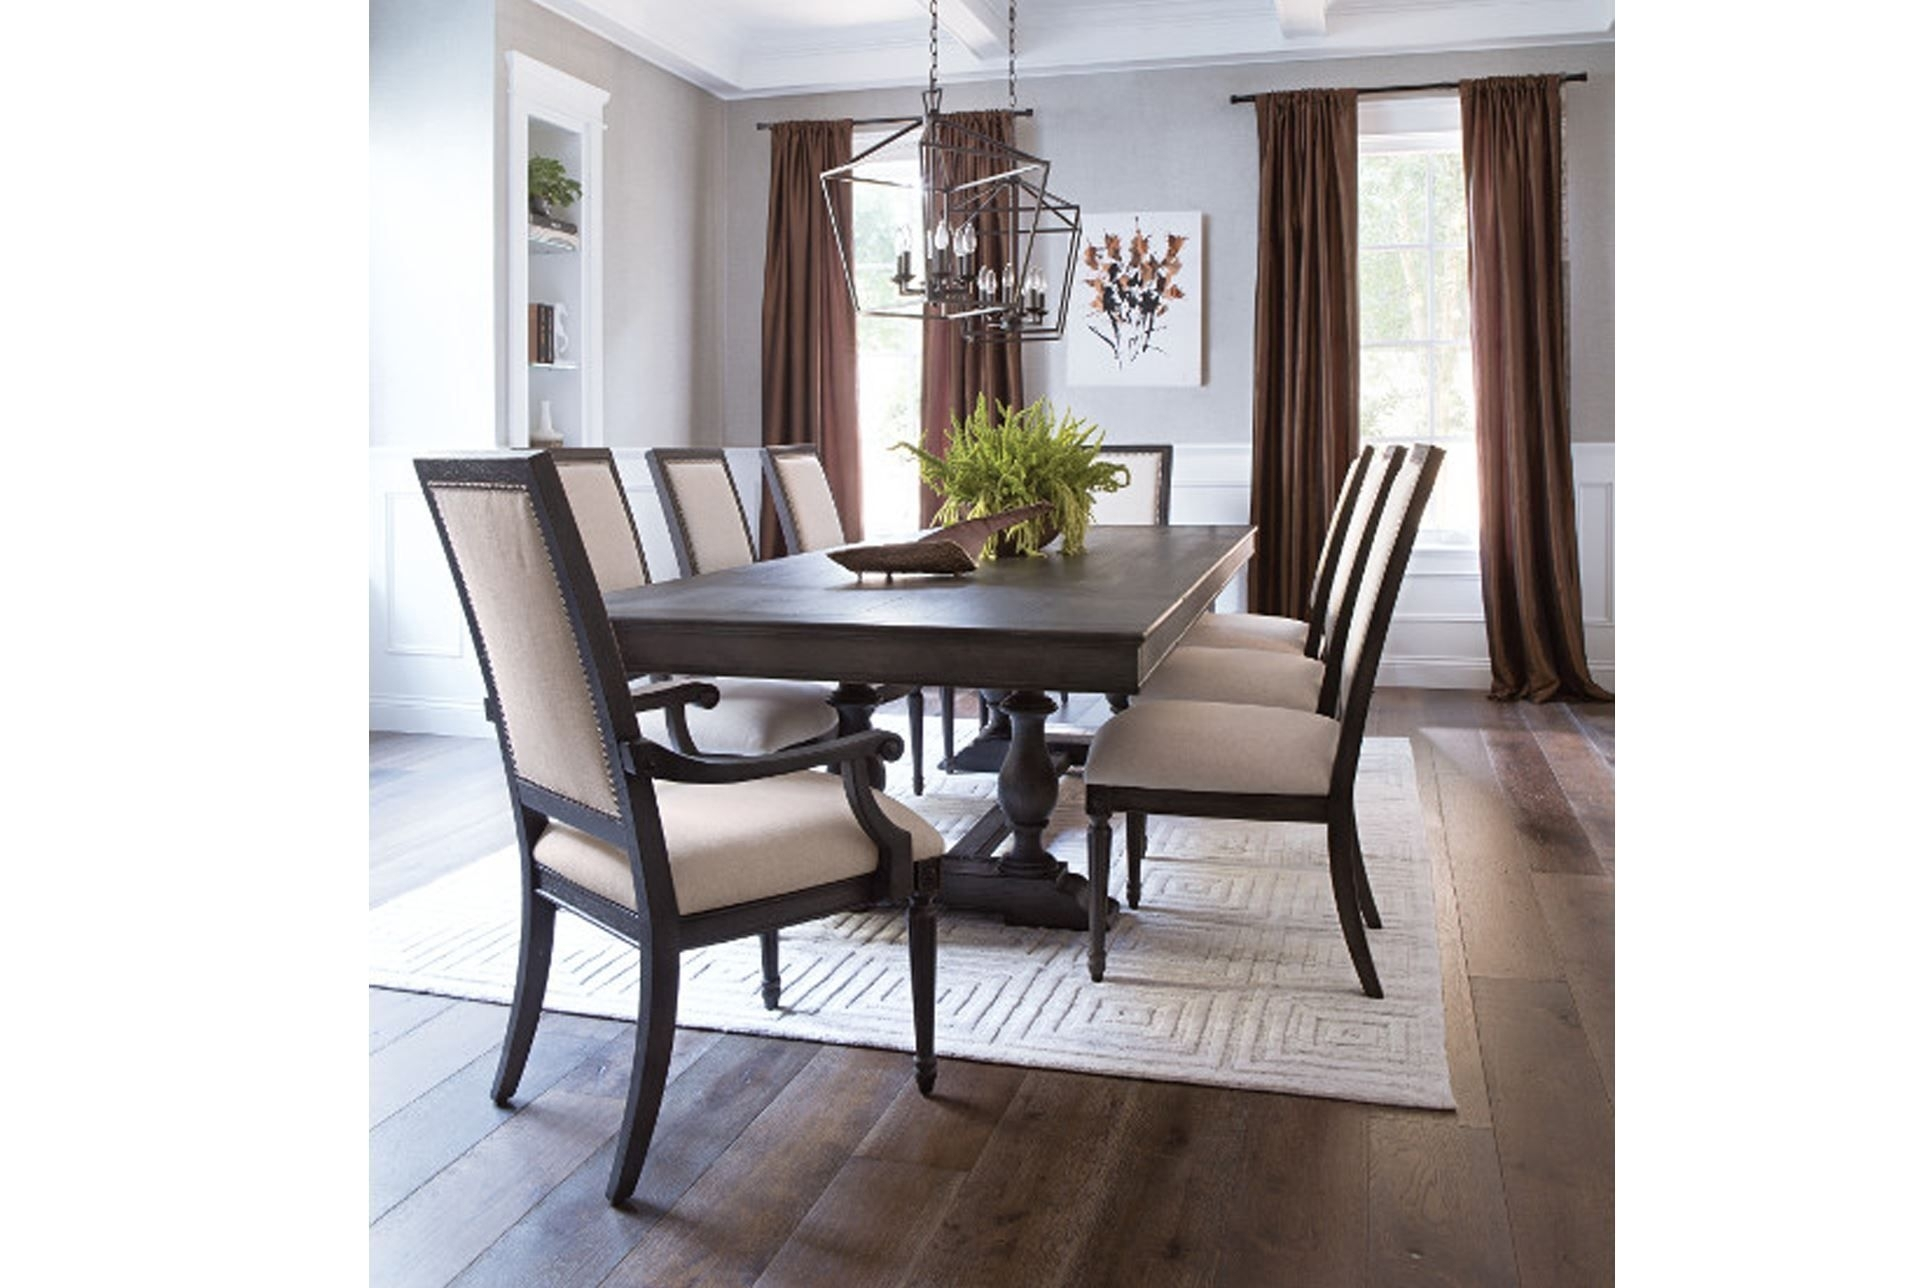 Chapleau 9 Piece Extension Dining Set, Off White Throughout Latest Chapleau Extension Dining Tables (Photo 8 of 20)